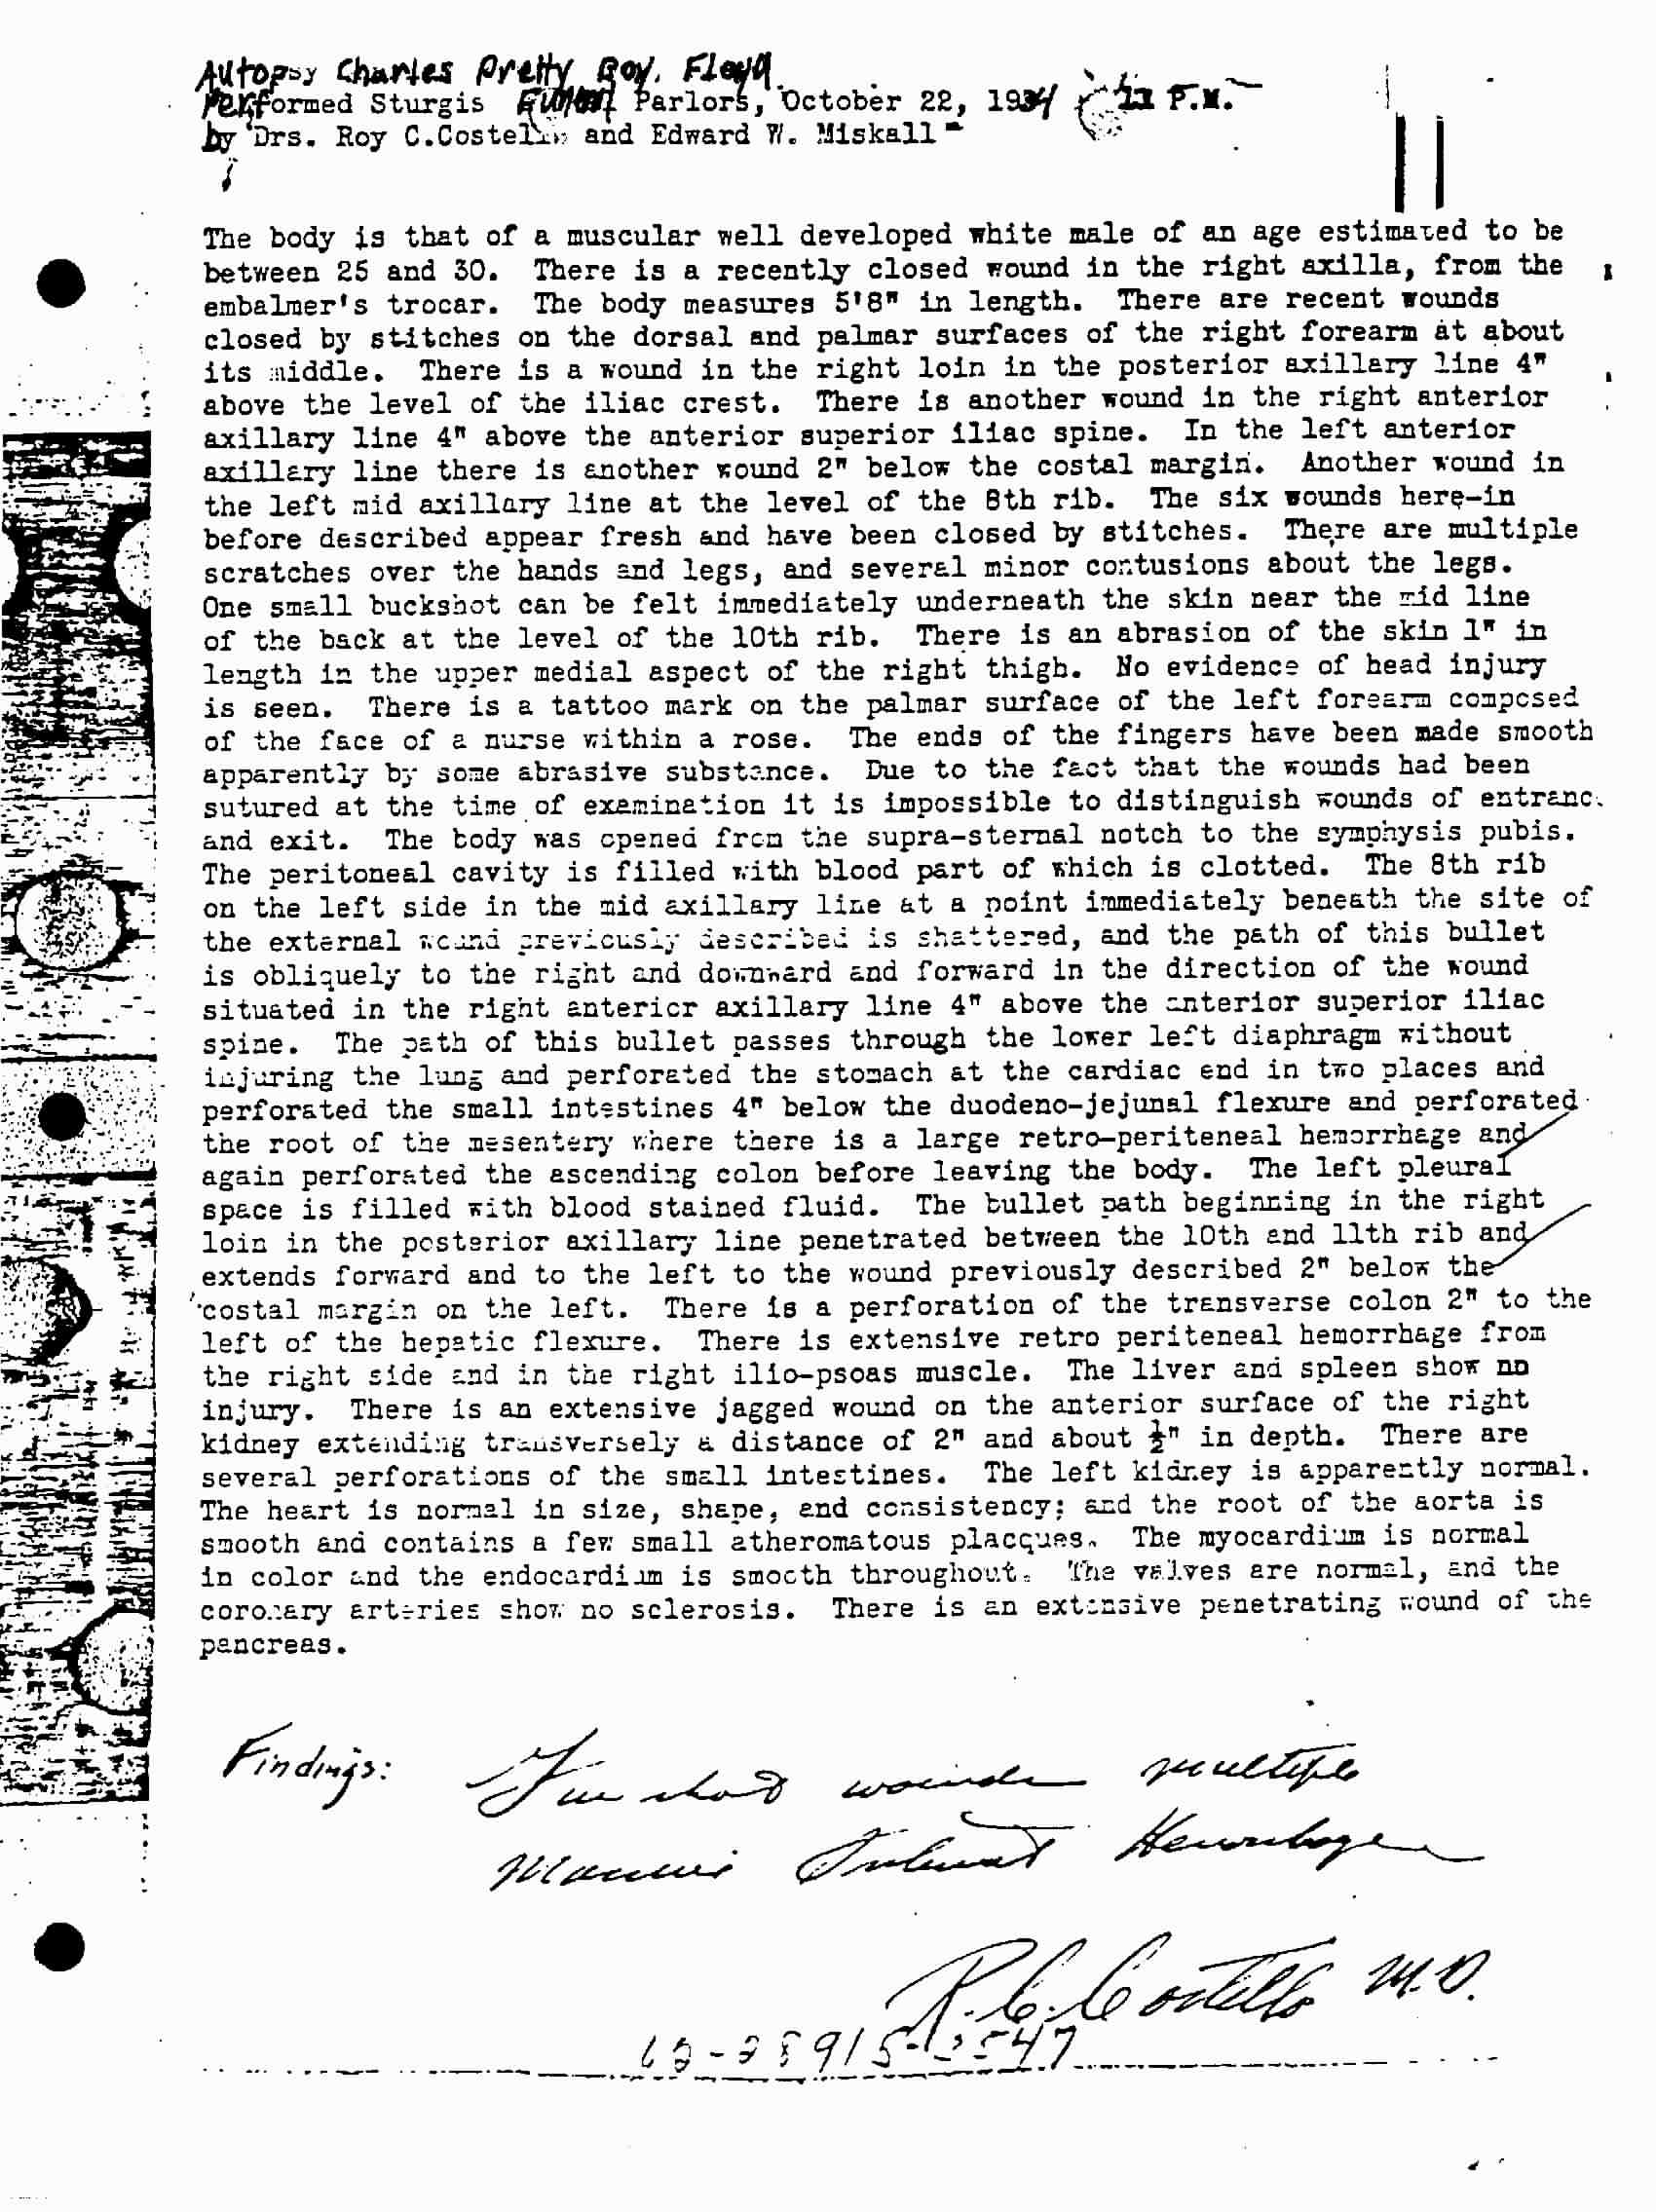 Photo copy of Autopsy of Charles Floyd